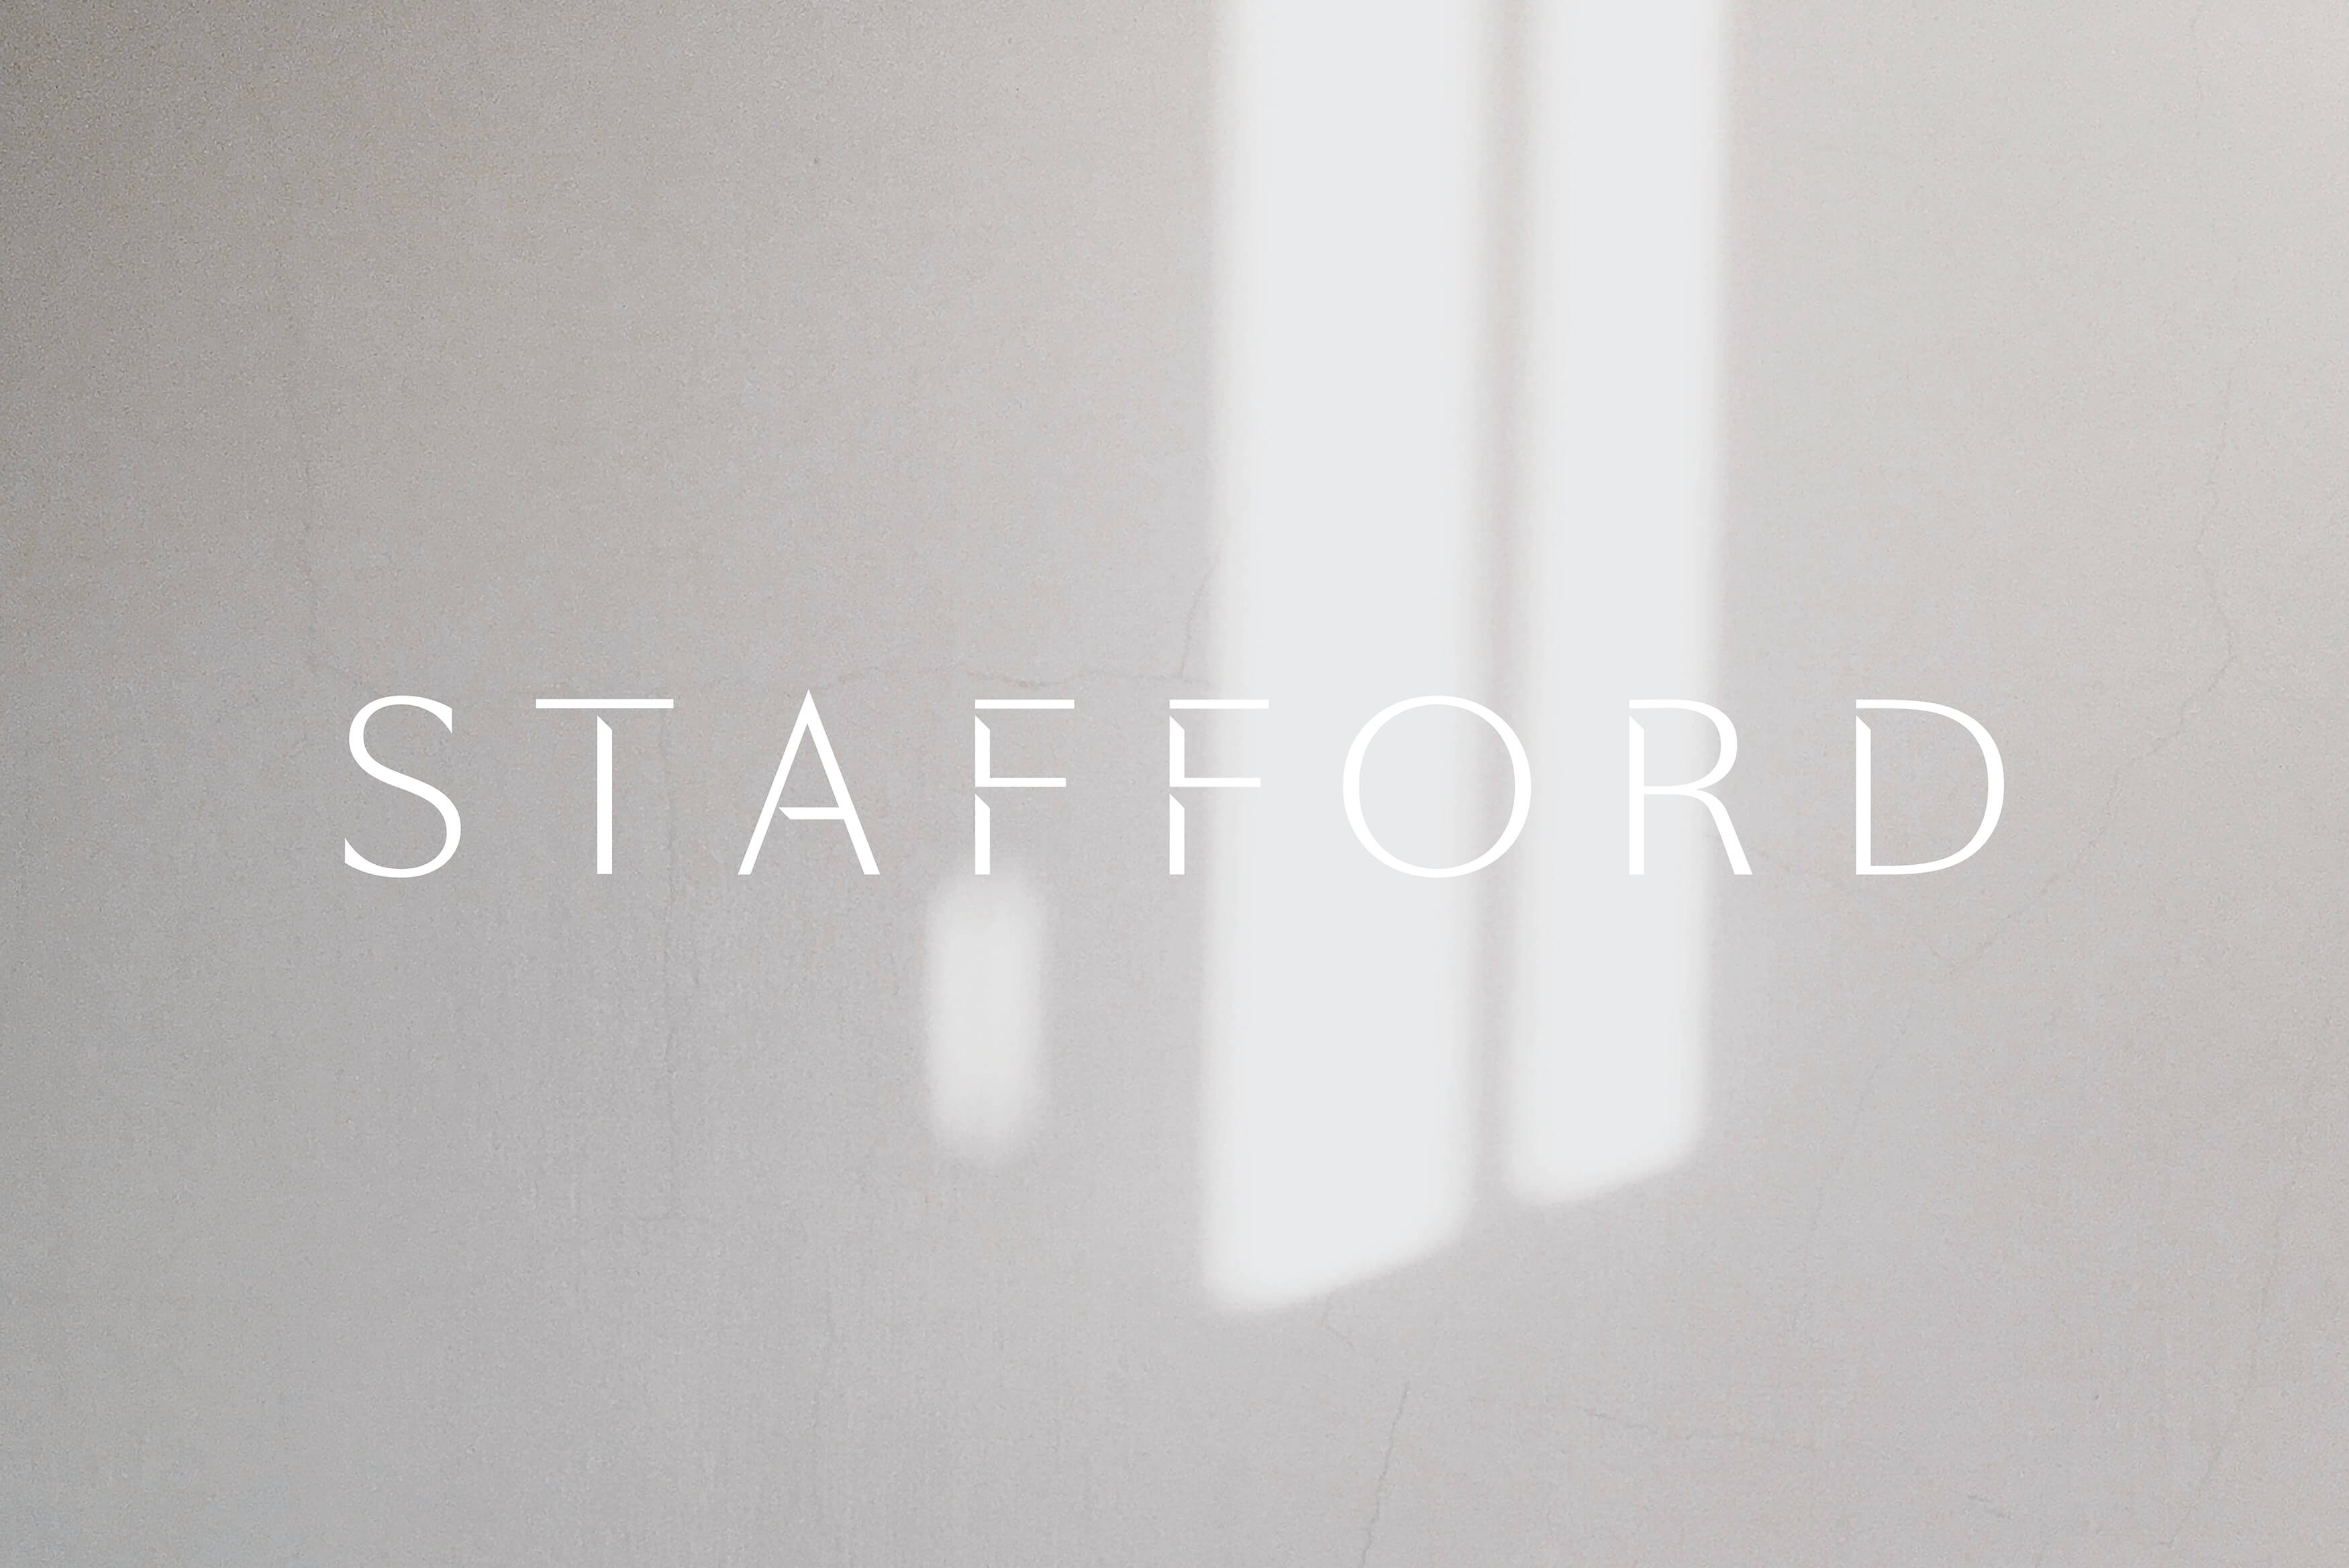 Stafford Architecture - Brand logotype on photograph on sunlight casting shadows on wall